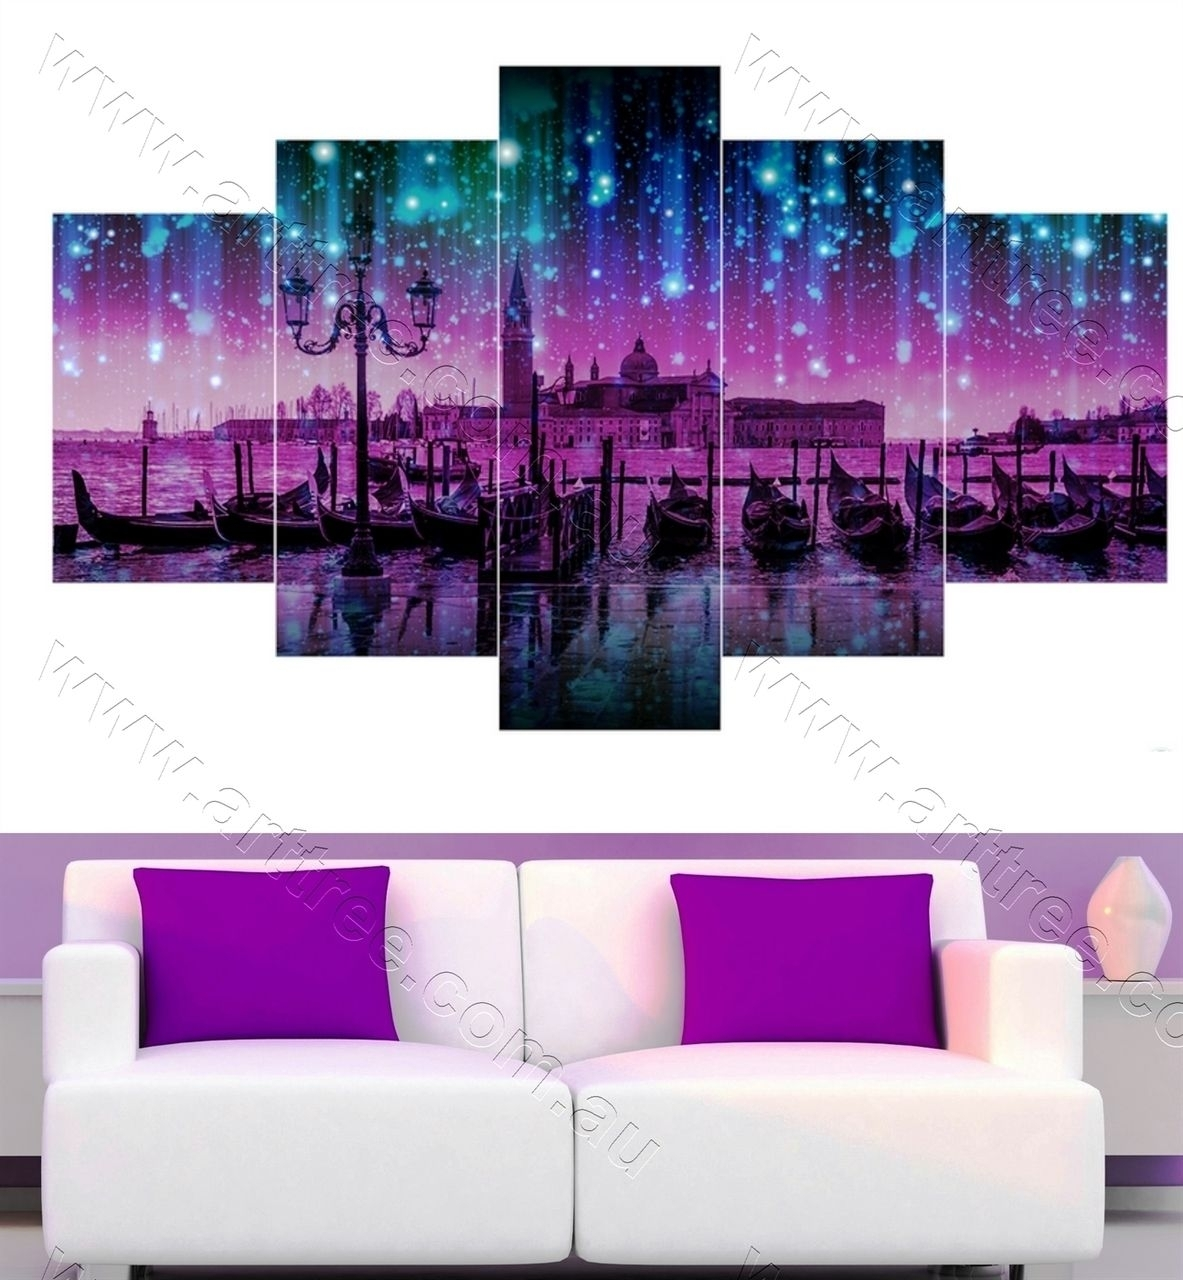 Boat In Purple Night Wall Art Perth | 5 Piece Canvas Print With Regard To Current Canvas Wall Art Of Perth (View 3 of 15)